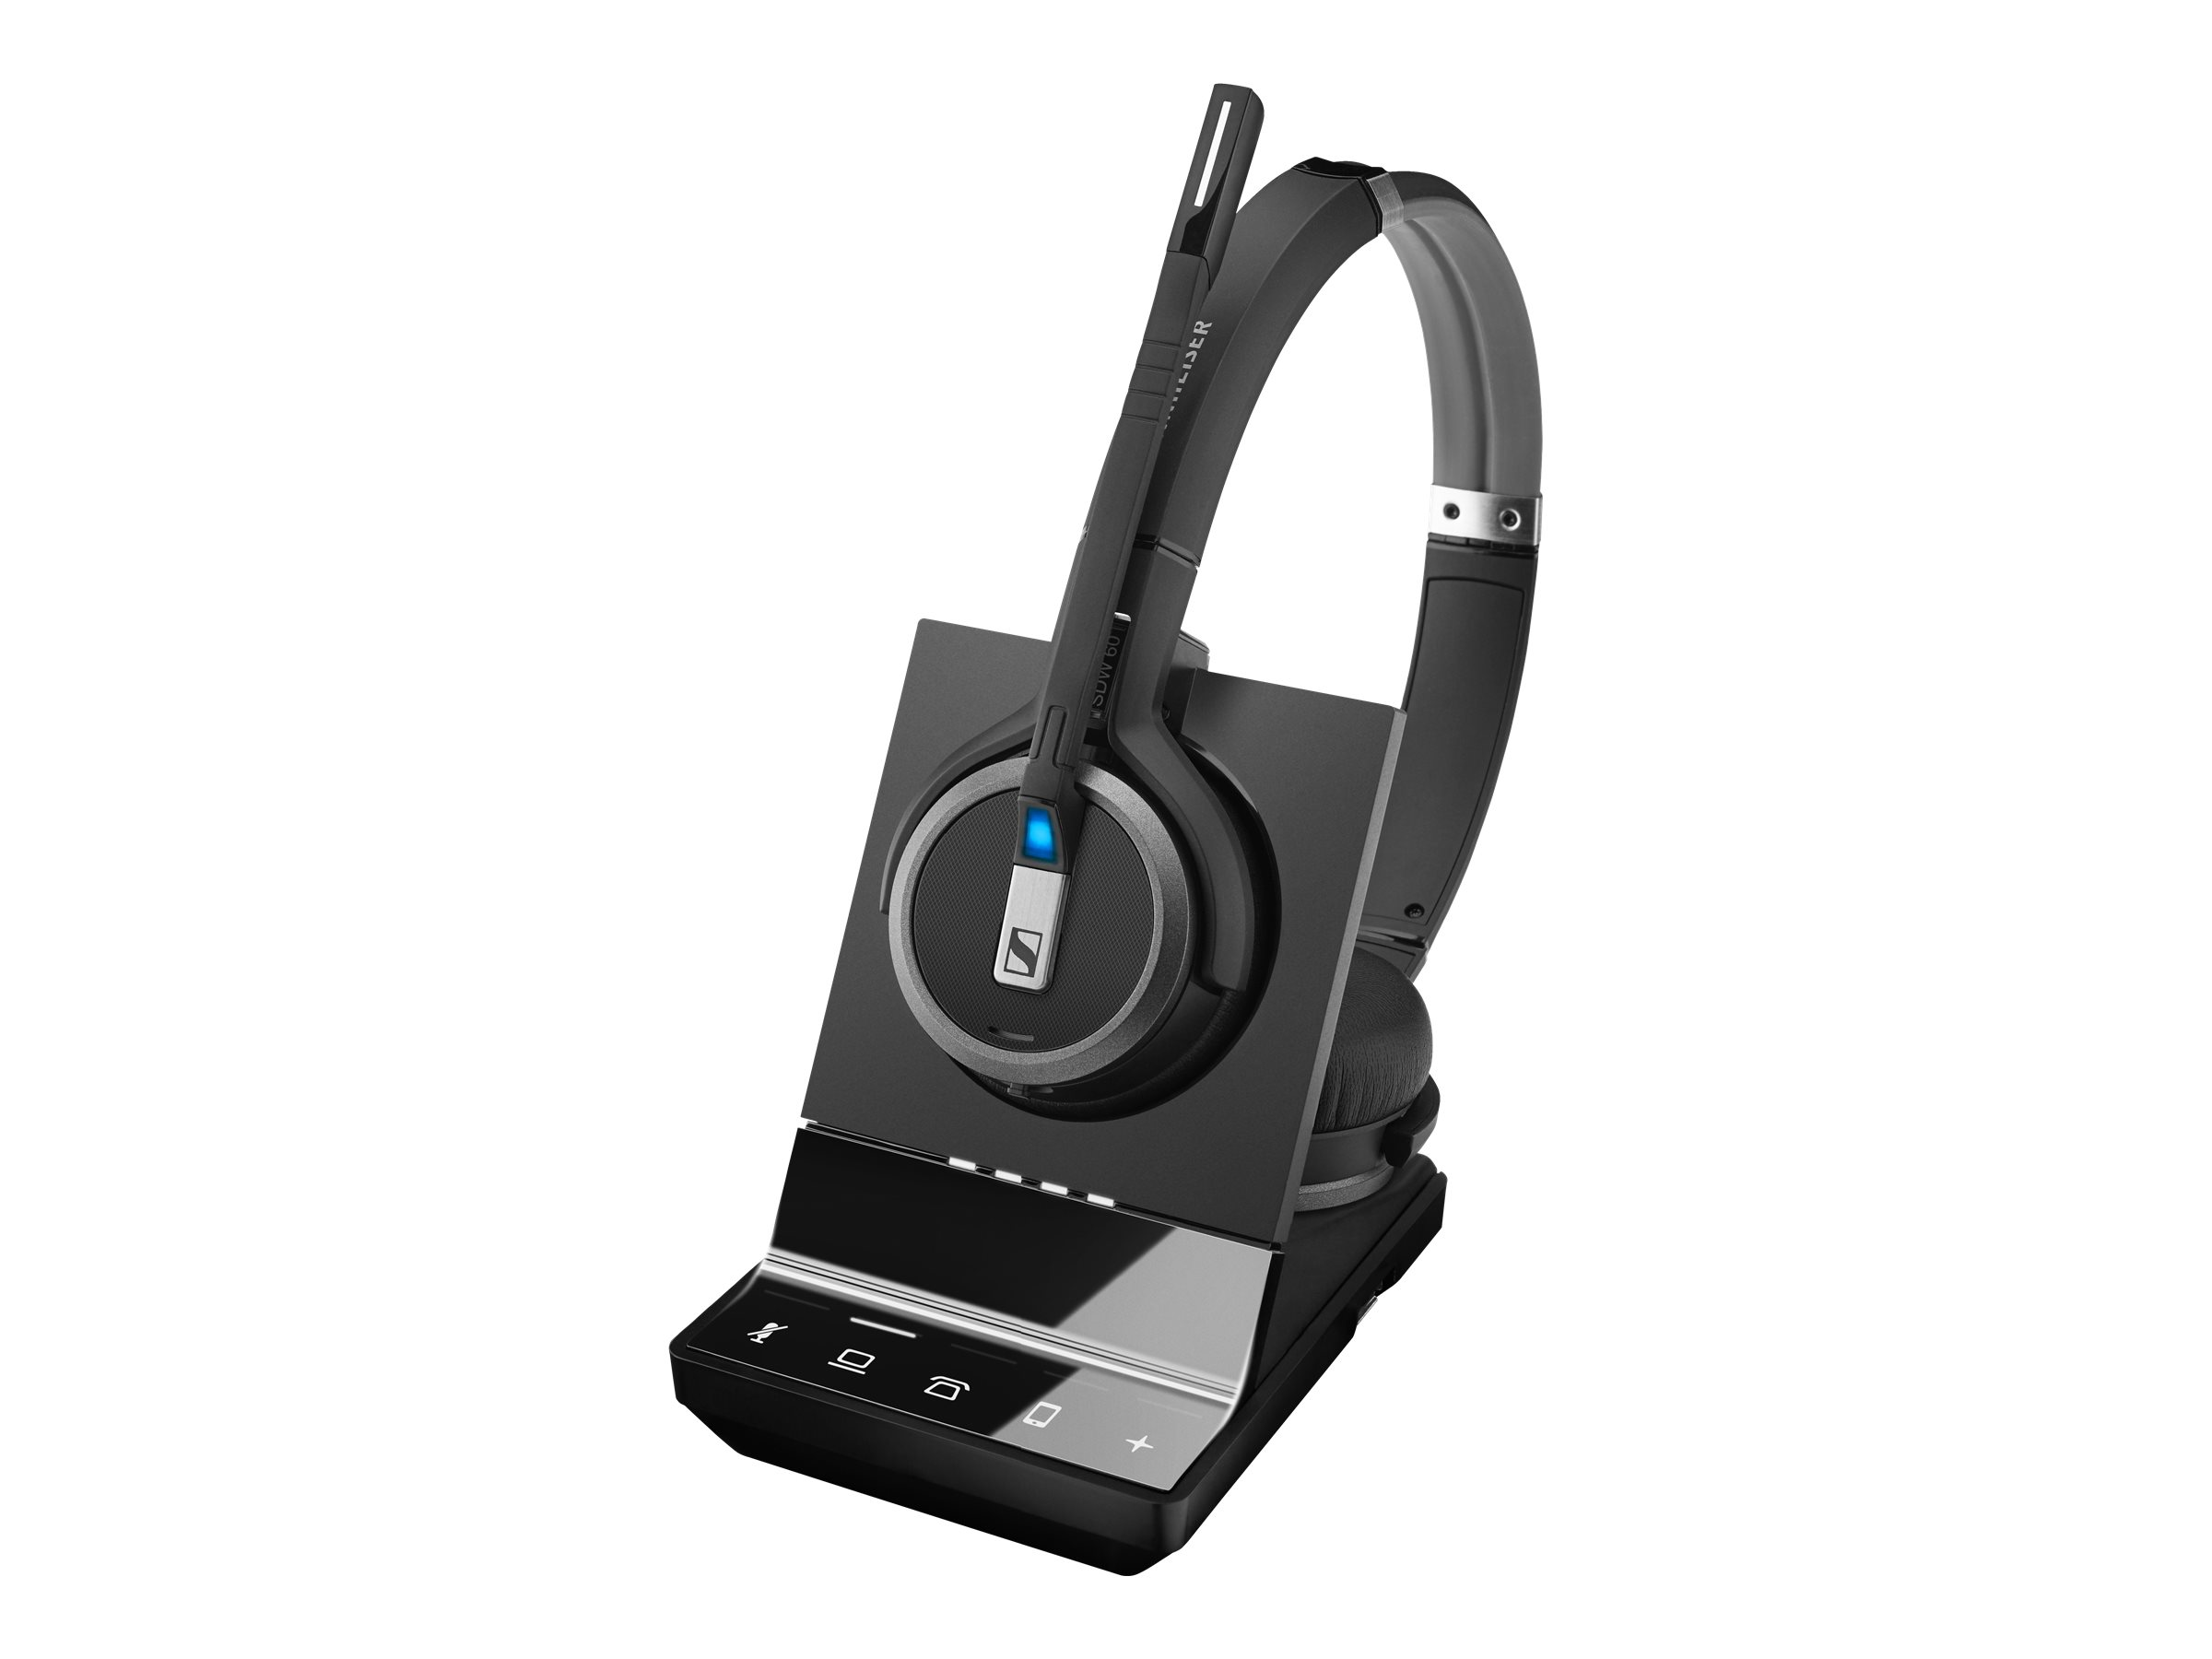 Sennheiser SDW 5065 - Headset-System - On-Ear - DECT - kabellos